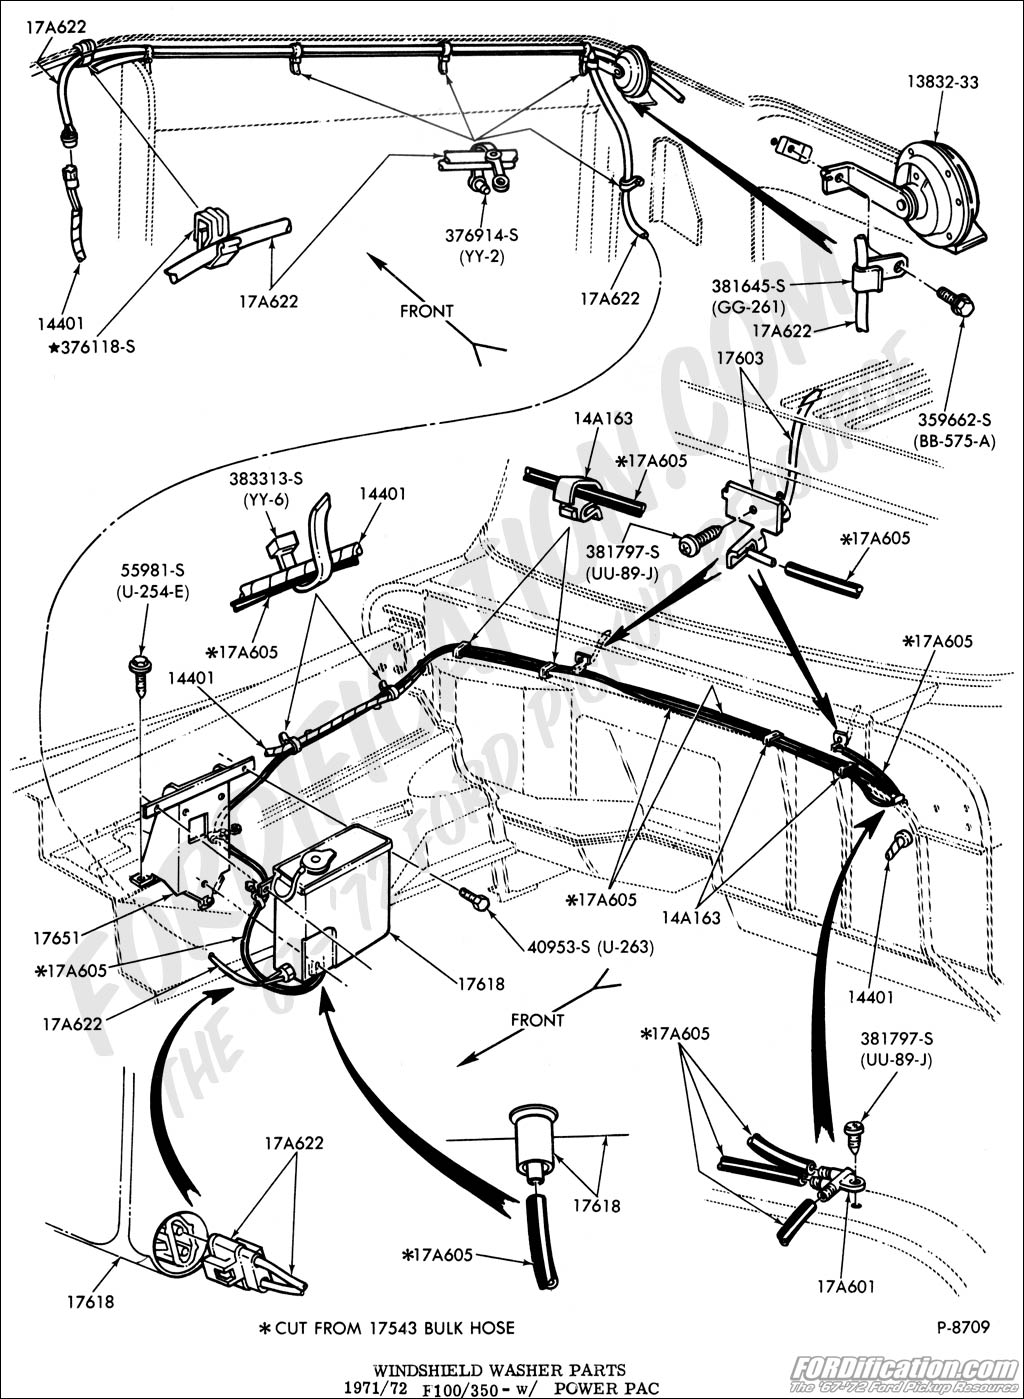 windshieldwshr pwrpak 100 [ 2003 ford f350 wiring diagram ] 2001 ford windstar lx  at bayanpartner.co